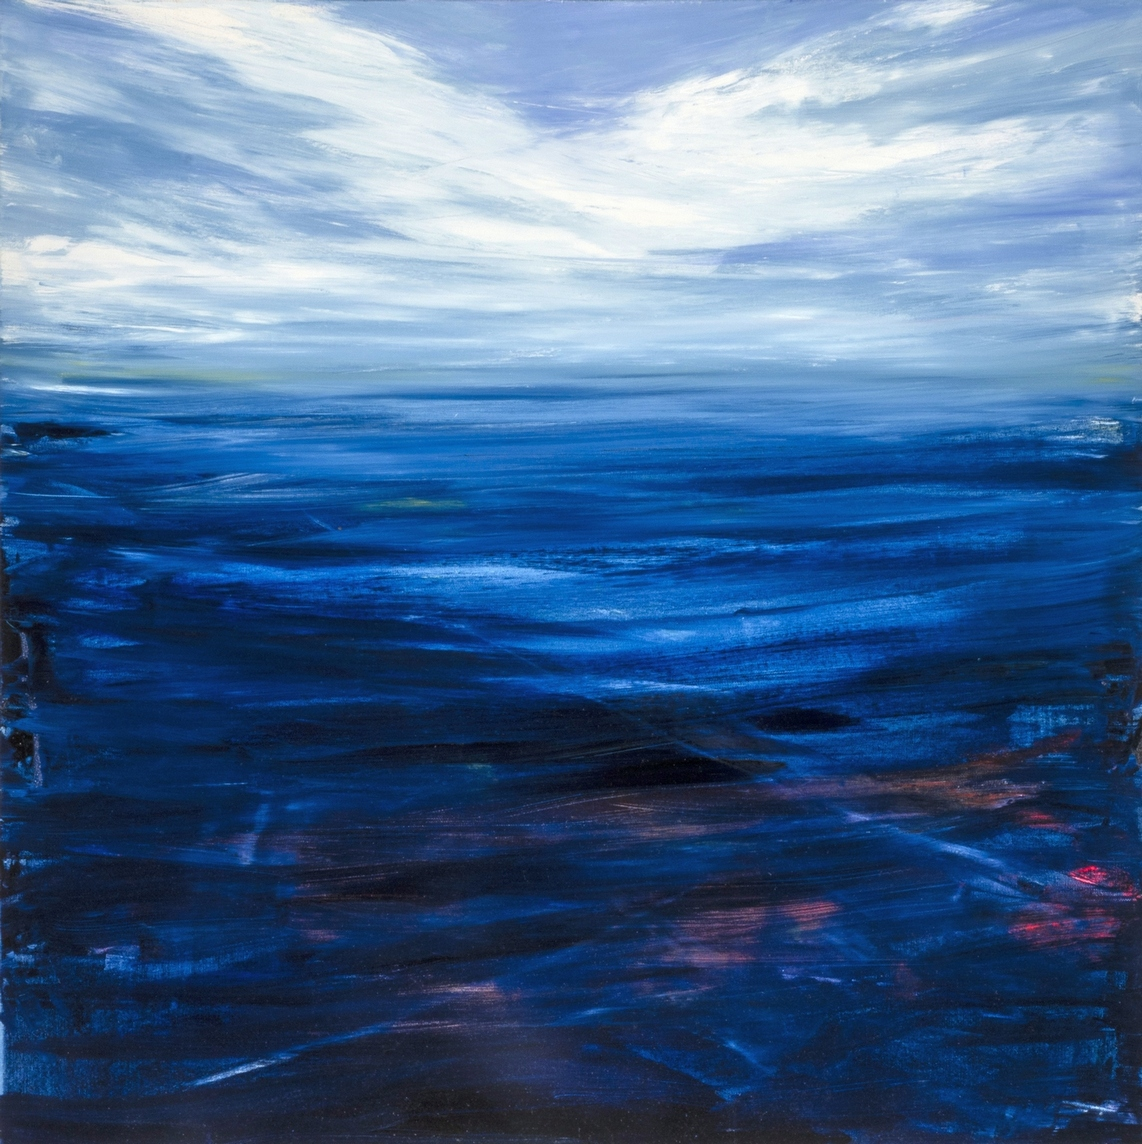 Francesco-Zavatta-2018 Oceano 100x100cm oil on canvas